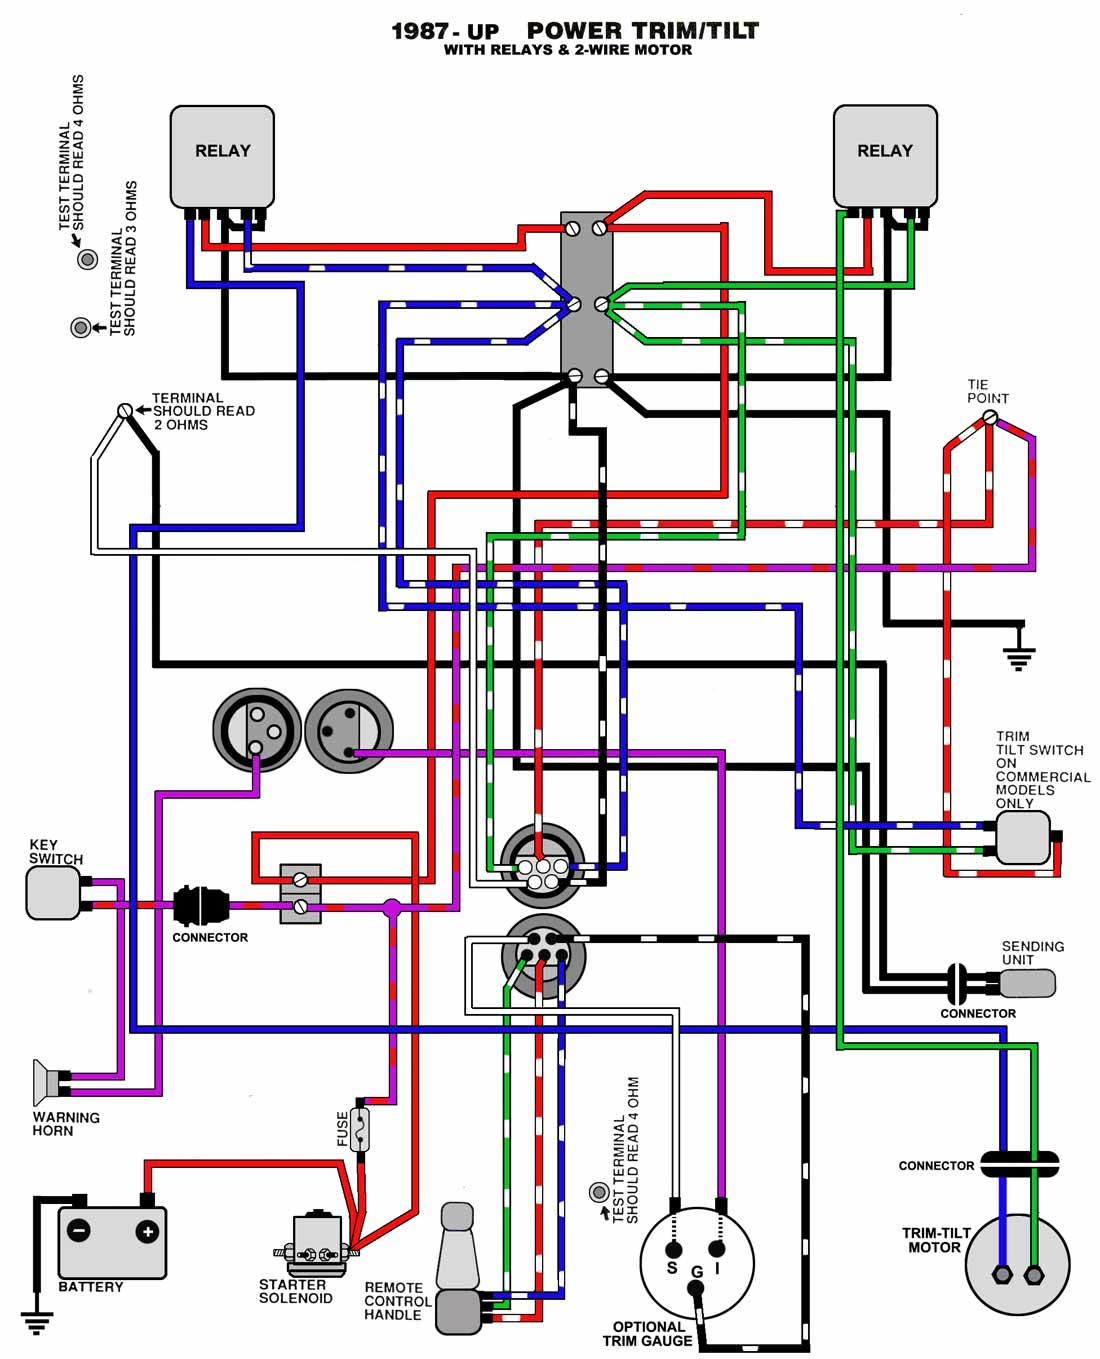 TnT_87_UP mastertech marine evinrude johnson outboard wiring diagrams wiring diagram for johnson outboard motor at mifinder.co